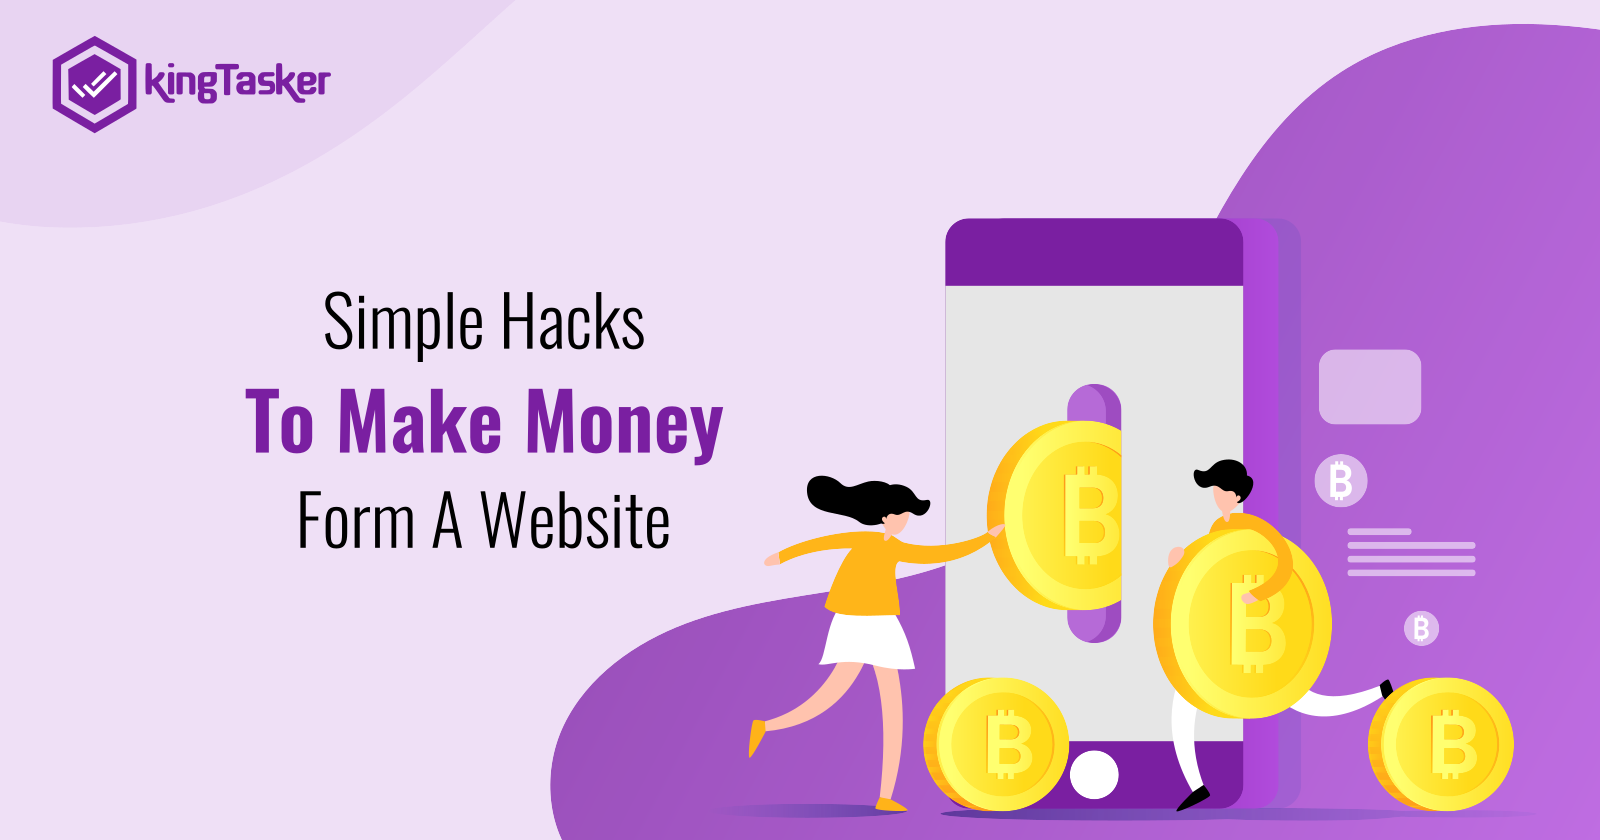 Simple Hacks To Make Money From a Website